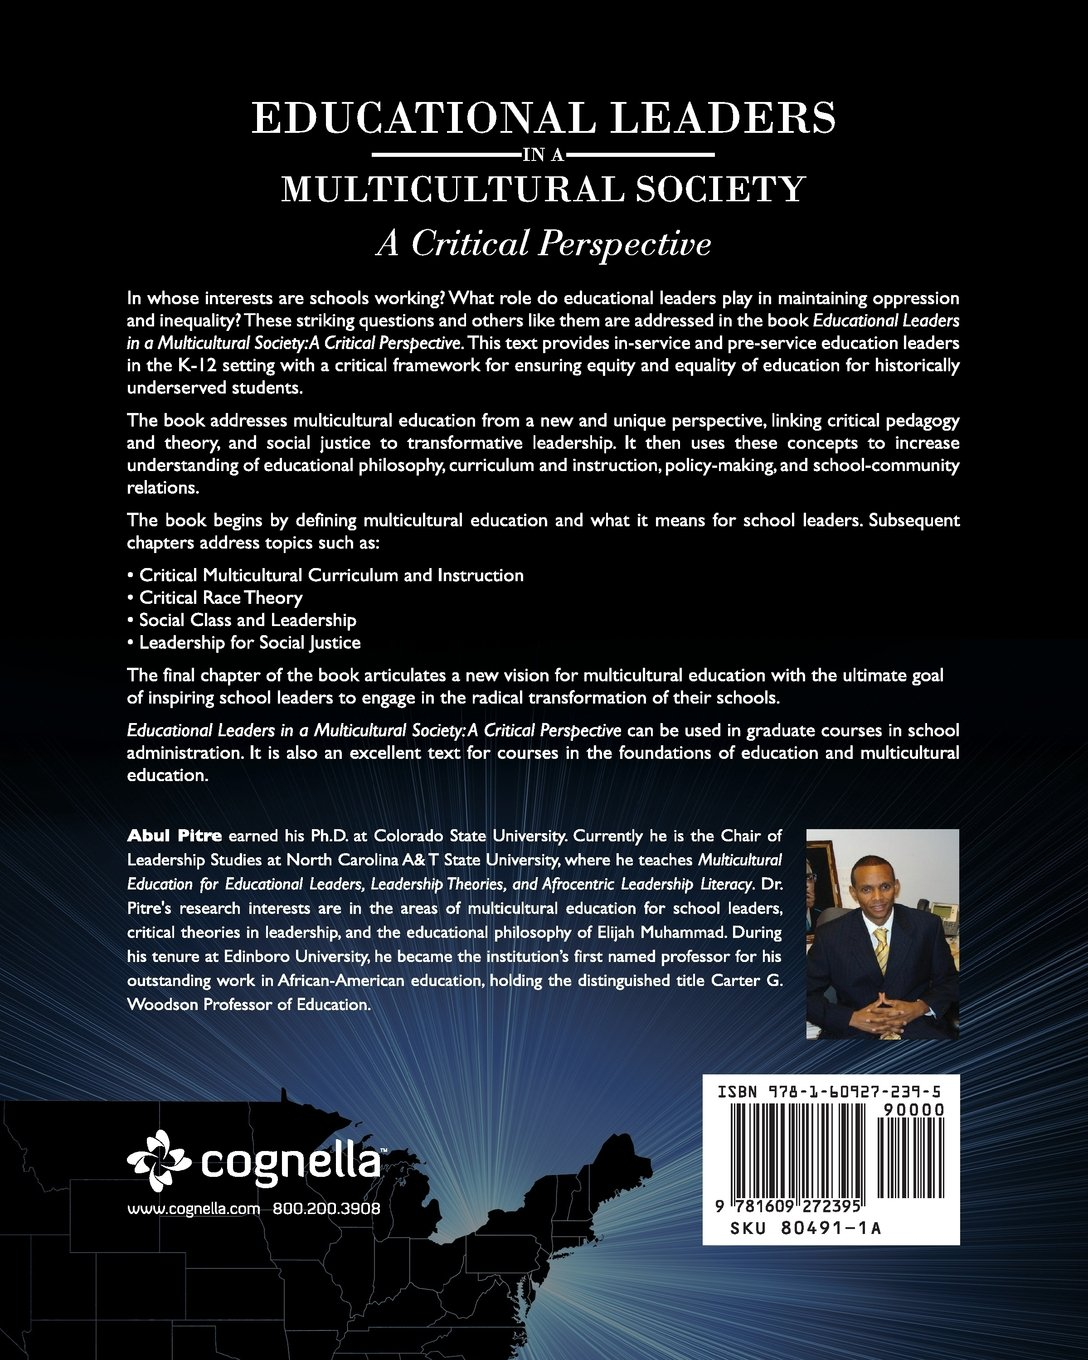 educational leaders in a multicultural society a critical educational leaders in a multicultural society a critical perspective abul pitre mary m hemphill 9781609272395 amazon com books